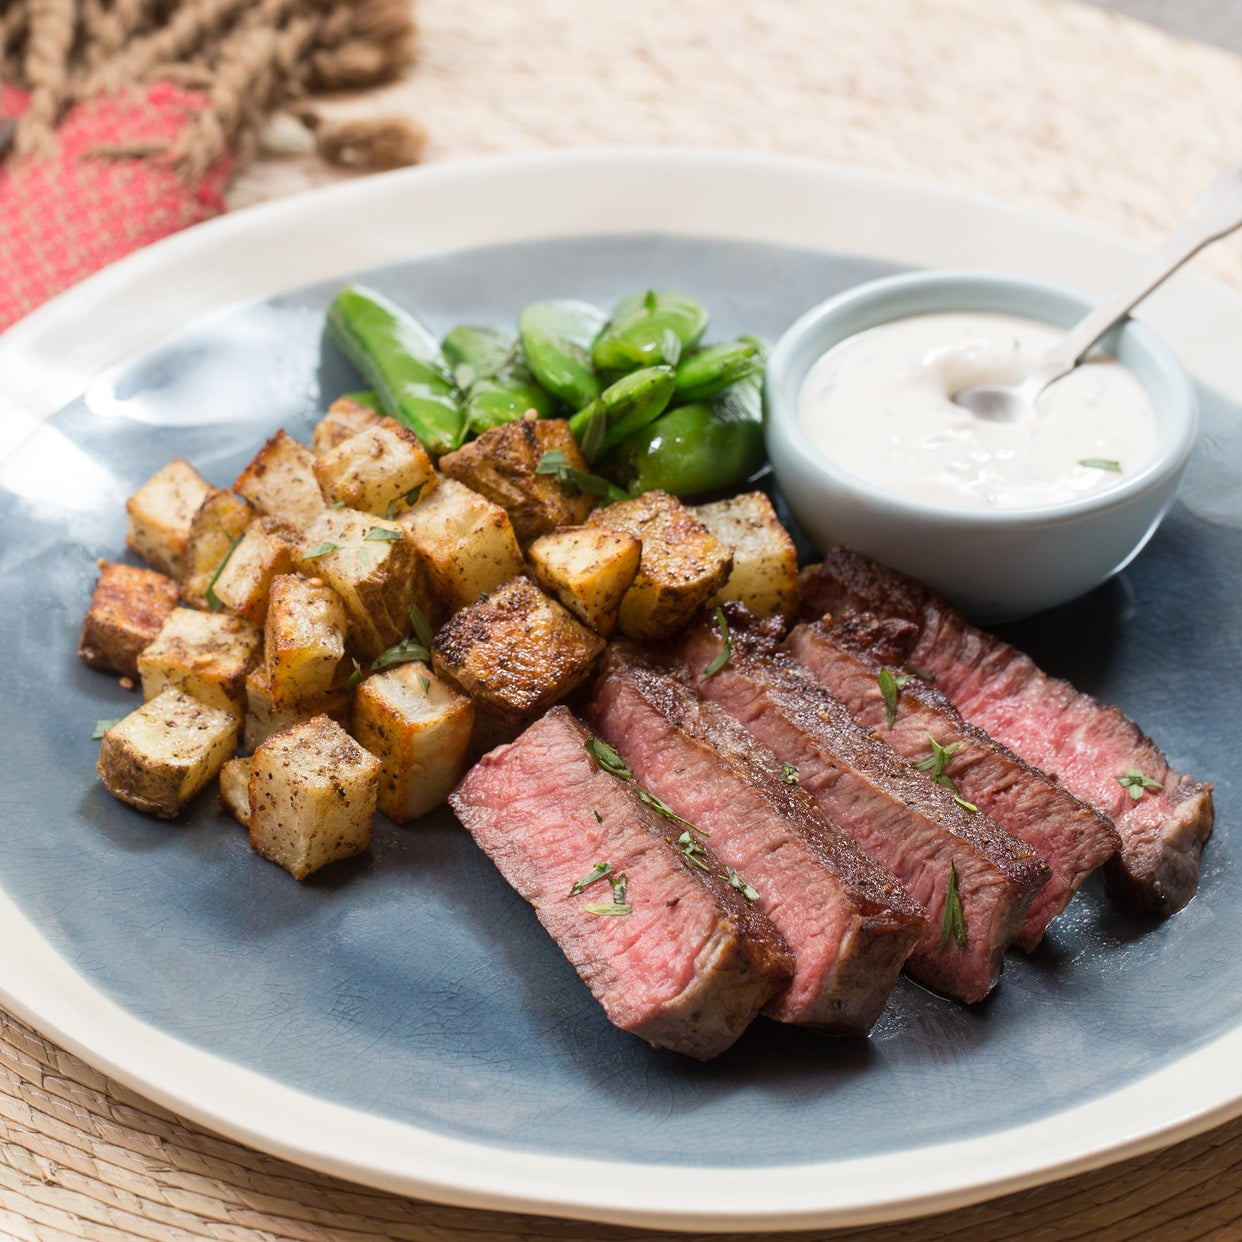 Seared Steak & Spiced Potato with Sautéed Sugar Snap Peas & Tarragon-Labneh Sauce